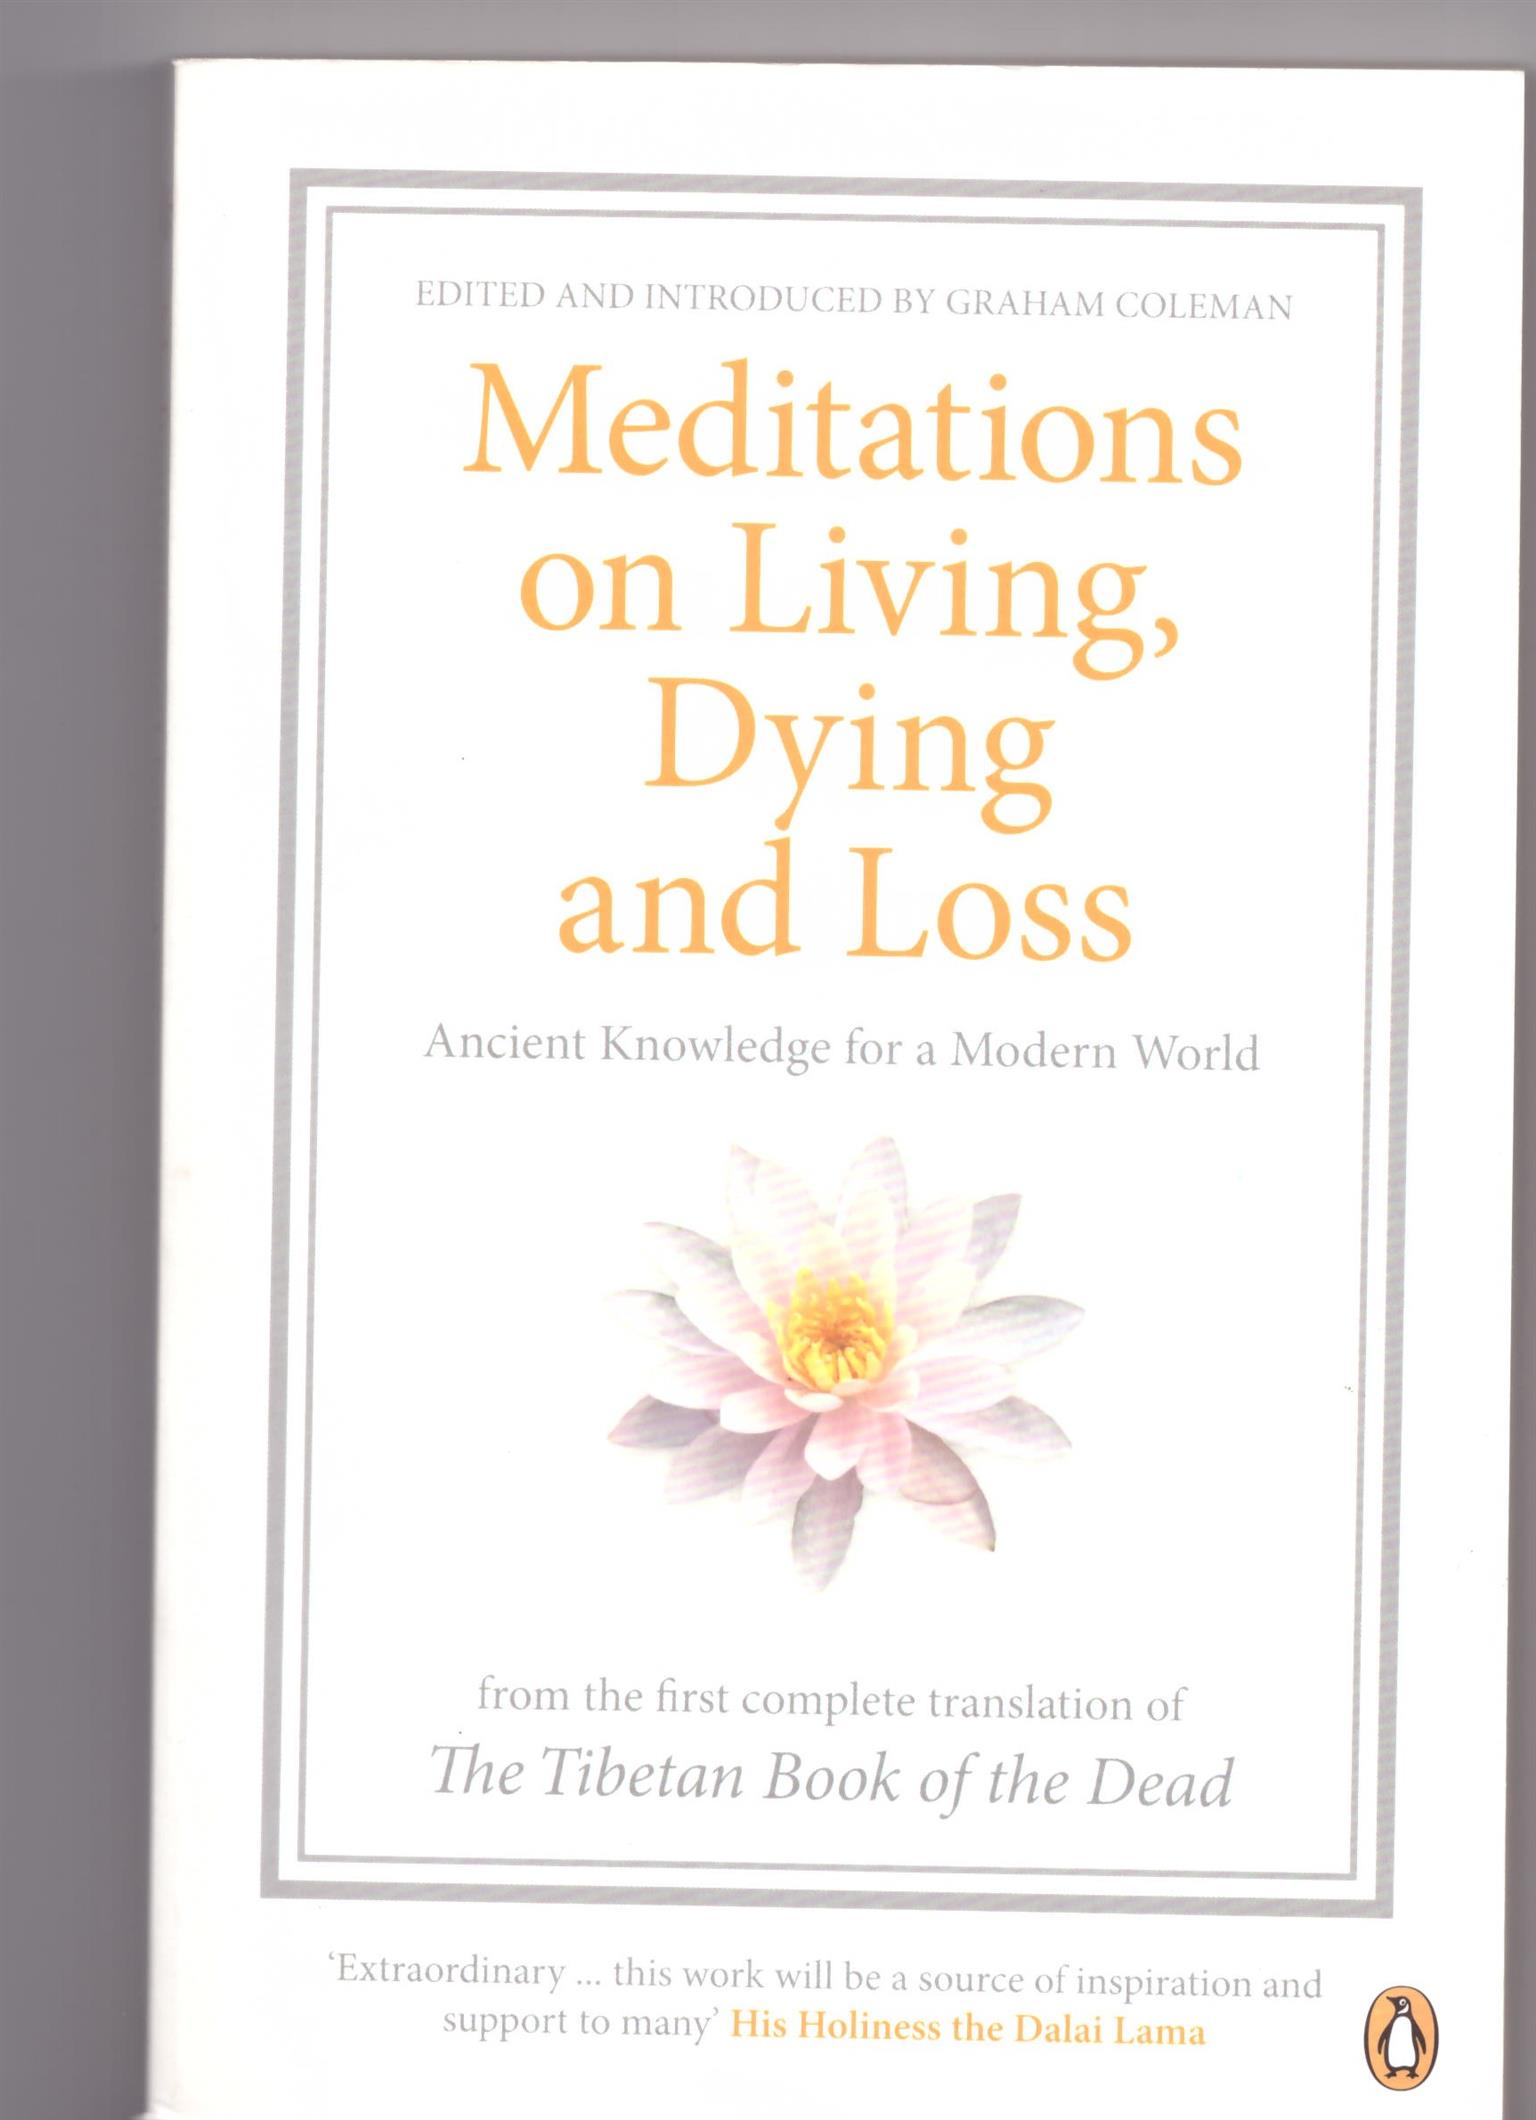 Meditations on  Living, Dying and Loss, Coleman & Meditation, the complete Guide, Monaghan & Diereck